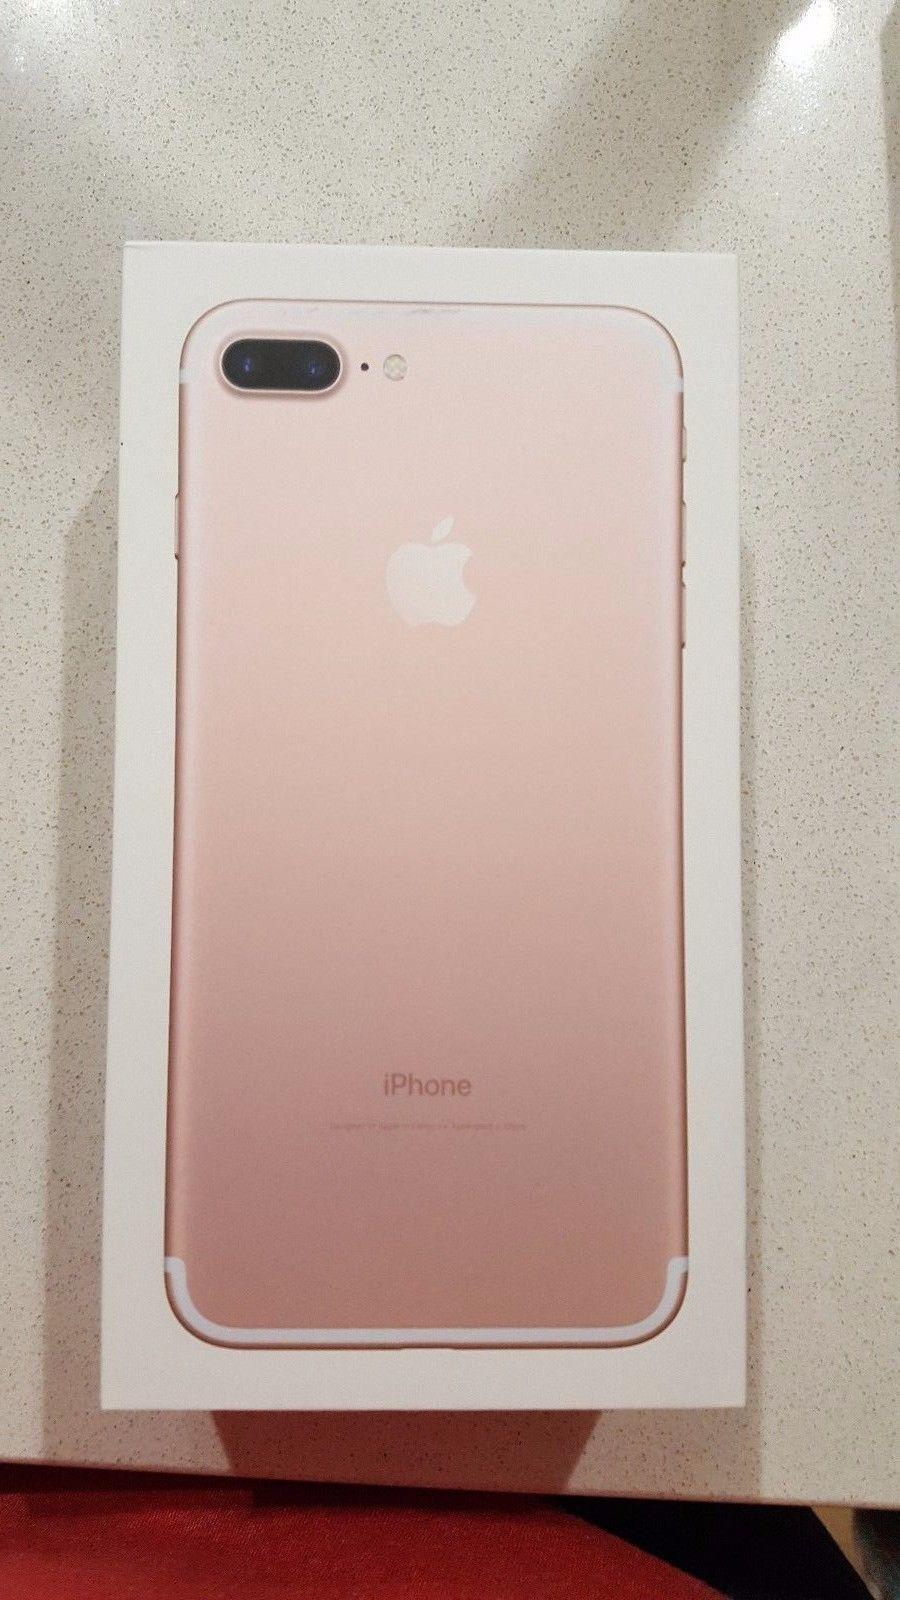 iphone 7 plus rose gold. iphone 7 plus - 32gb rose gold (at\u0026t) in hand ready to ship iphone